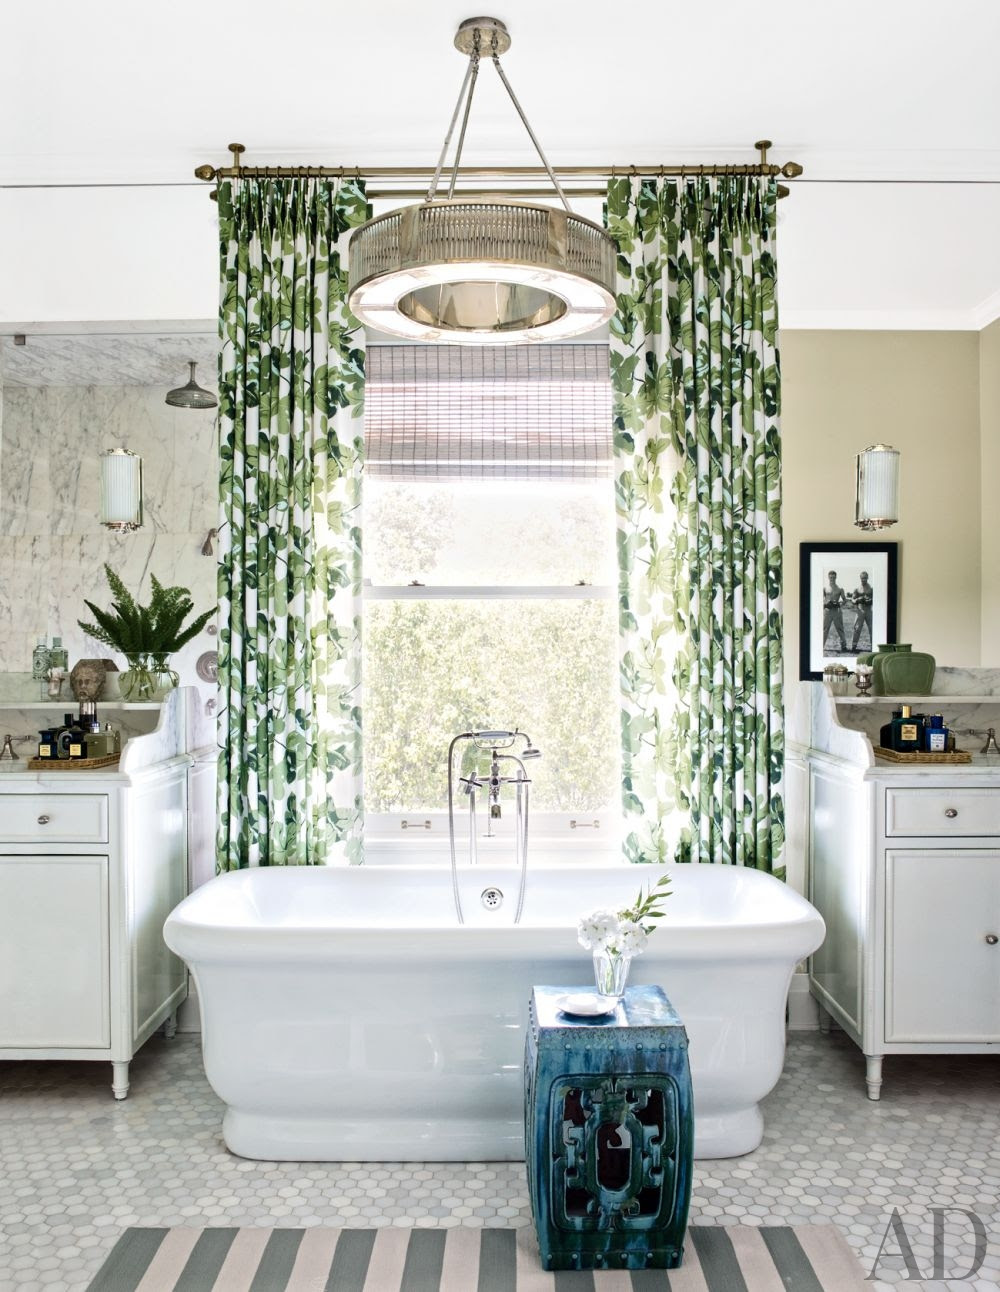 IntDesignerChat Feb. 25 Topic: What Is New For Kitchen And Bath